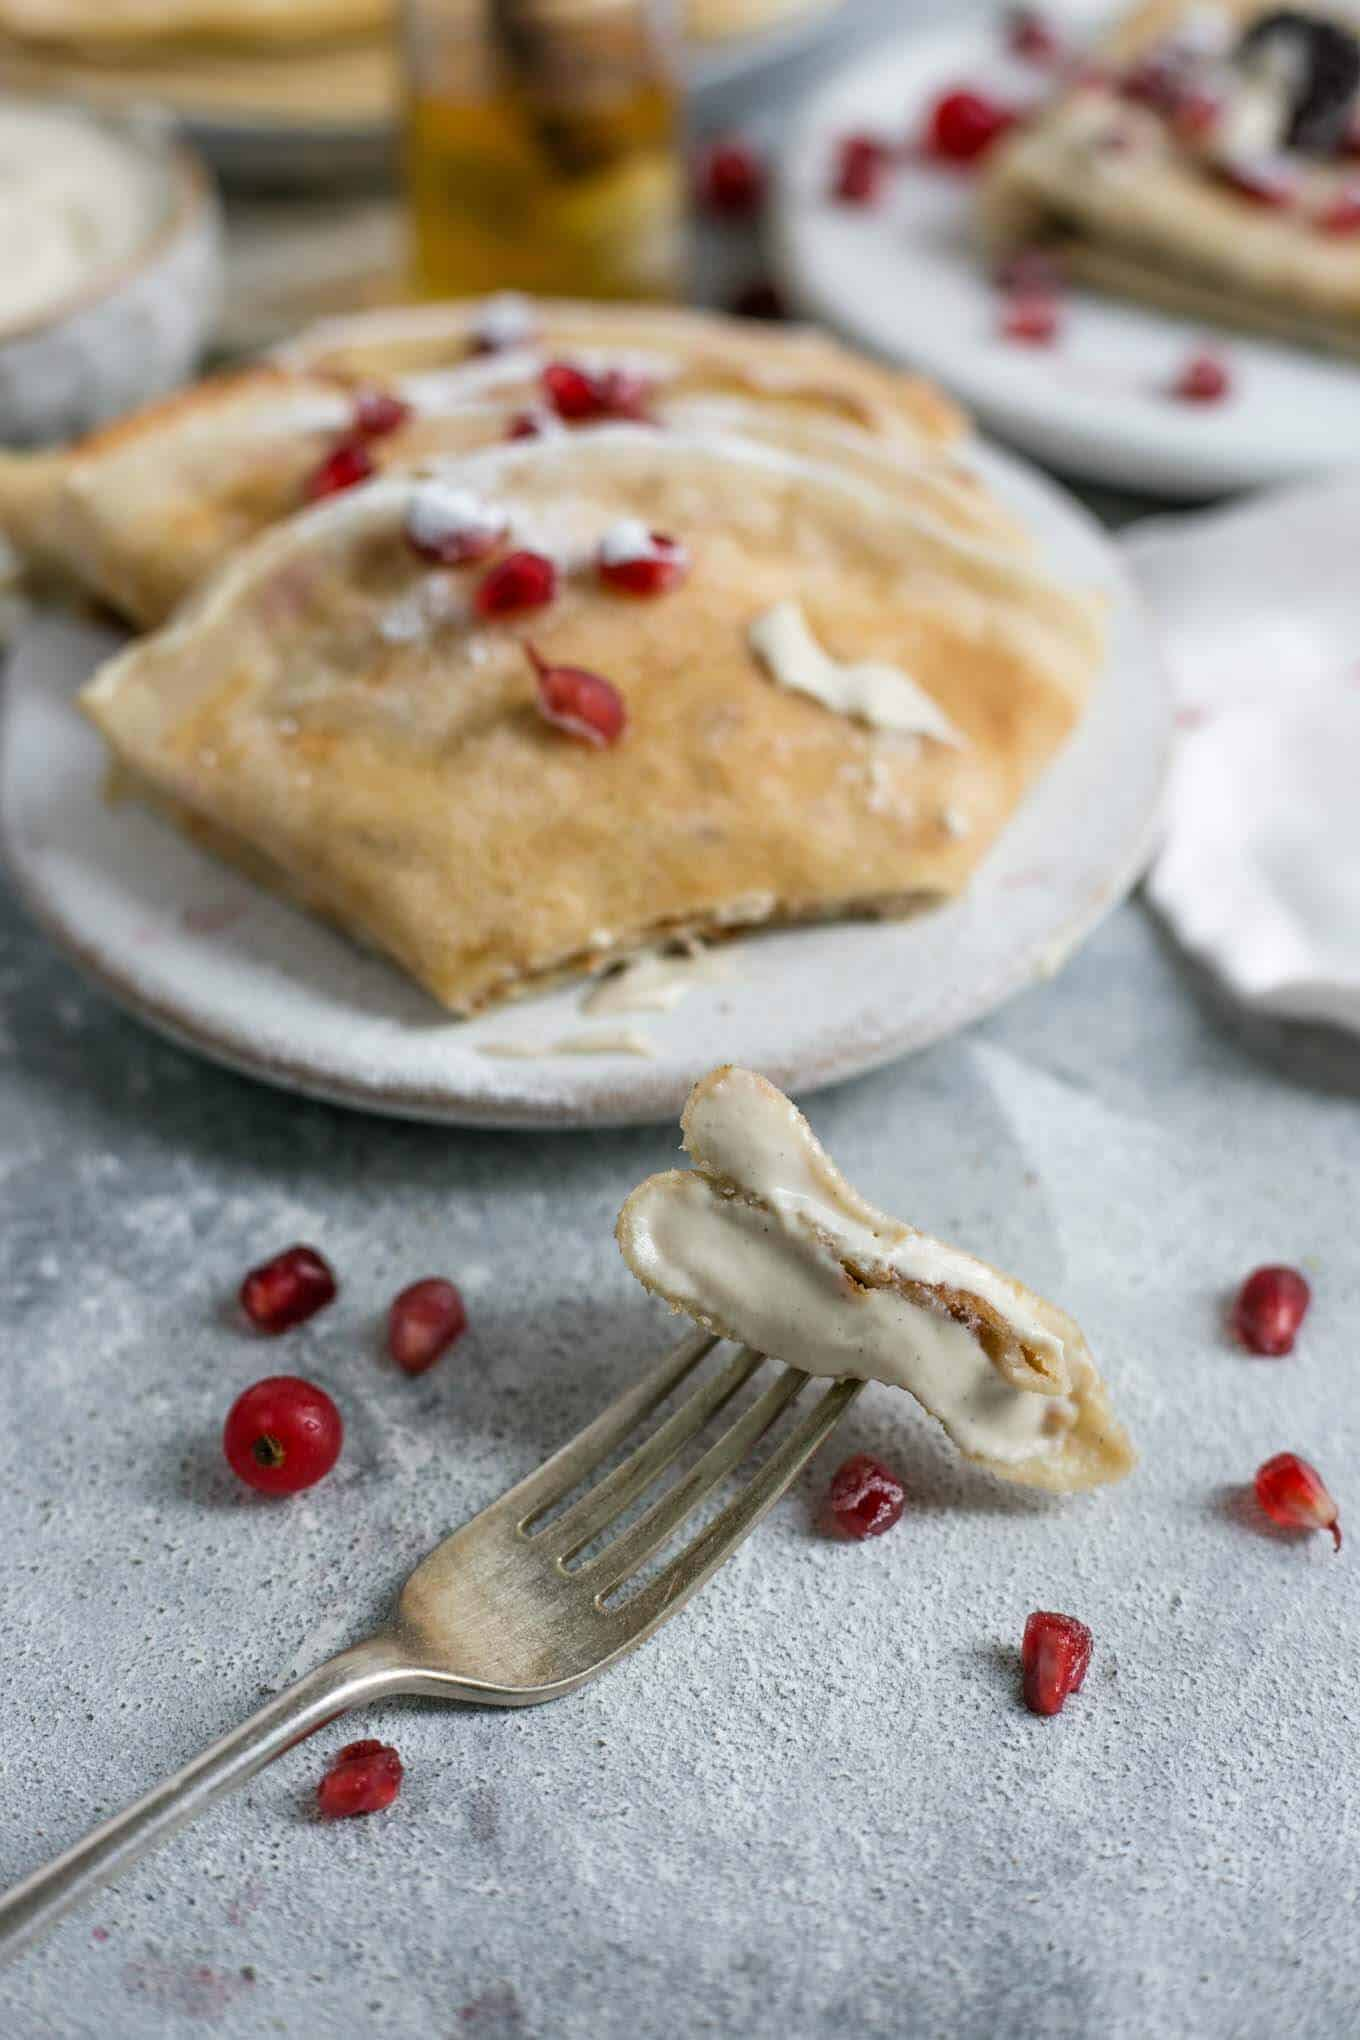 Super tasty, easy and delicious vegan french crepes! Only handful of ingredients, perfect breakfast or dessert! #vegan #breakfast #crepes | via @annabanana.co